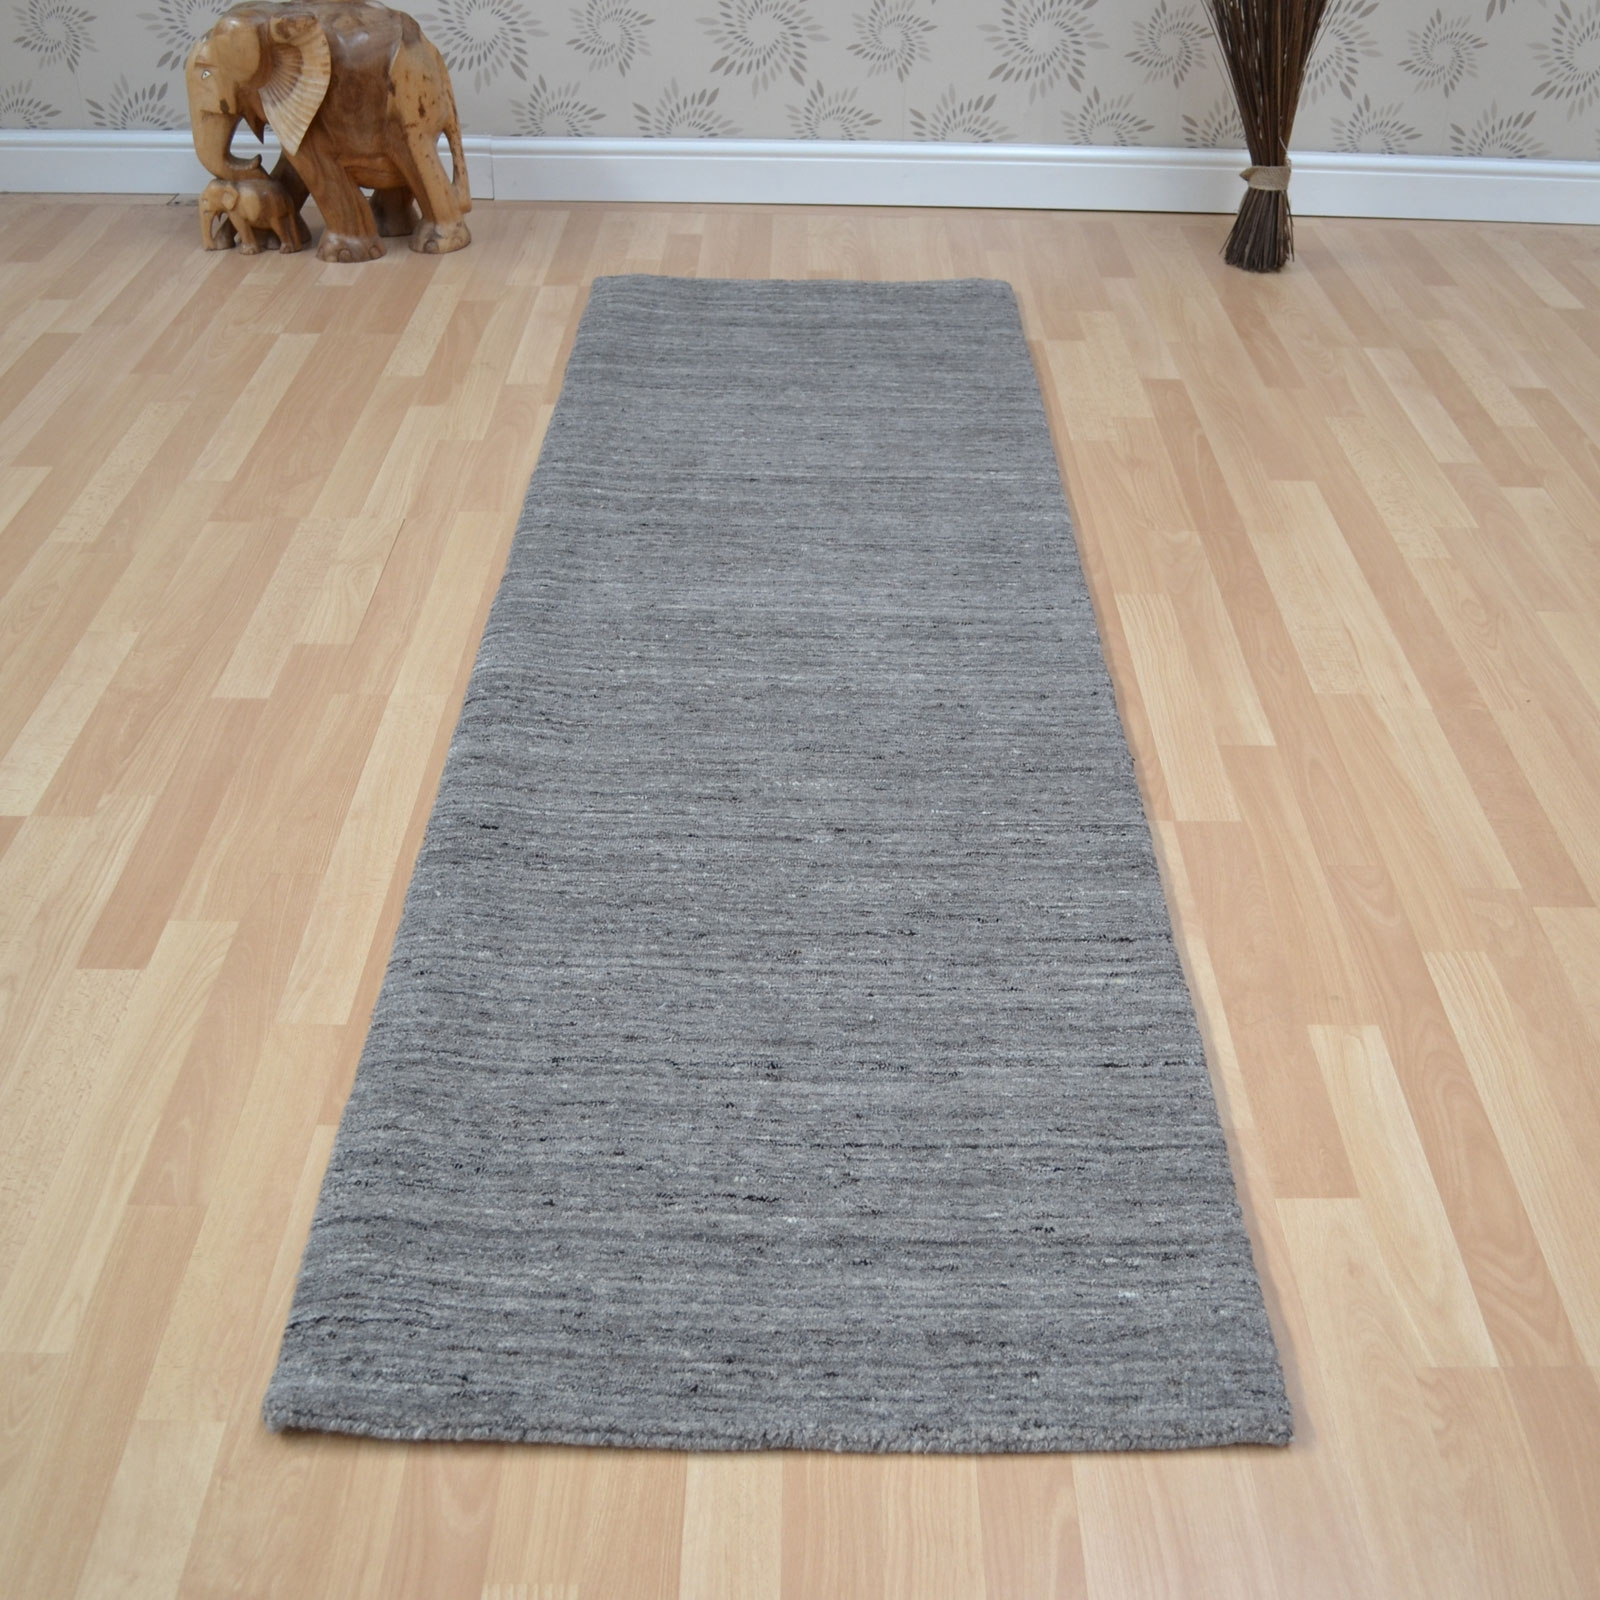 Hallway Runner Rugs Uk Roselawnlutheran Regarding Carpet Runners For Hallway (Image 5 of 15)